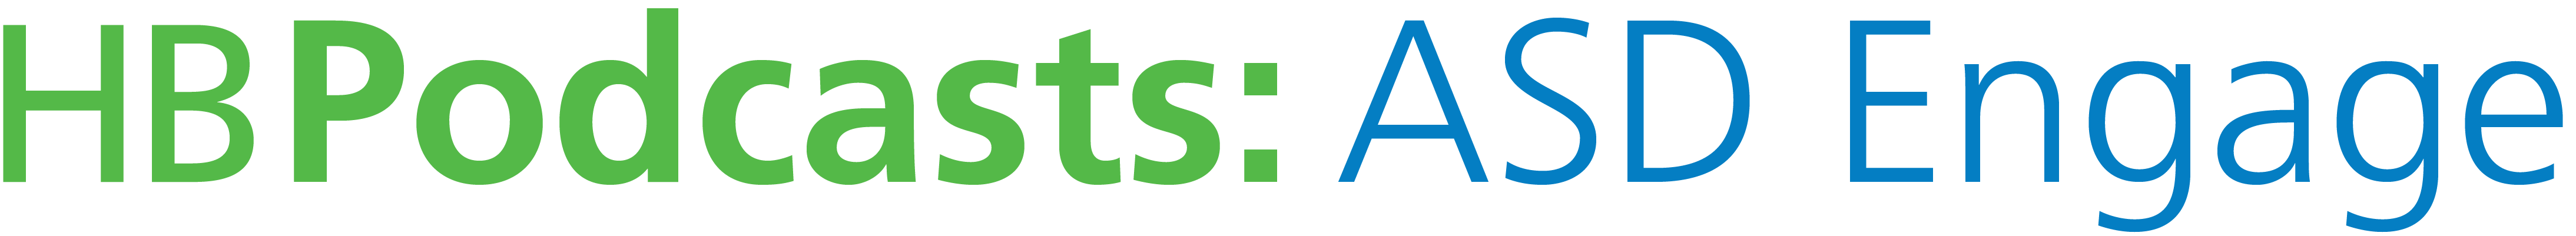 logo for ASD Engage